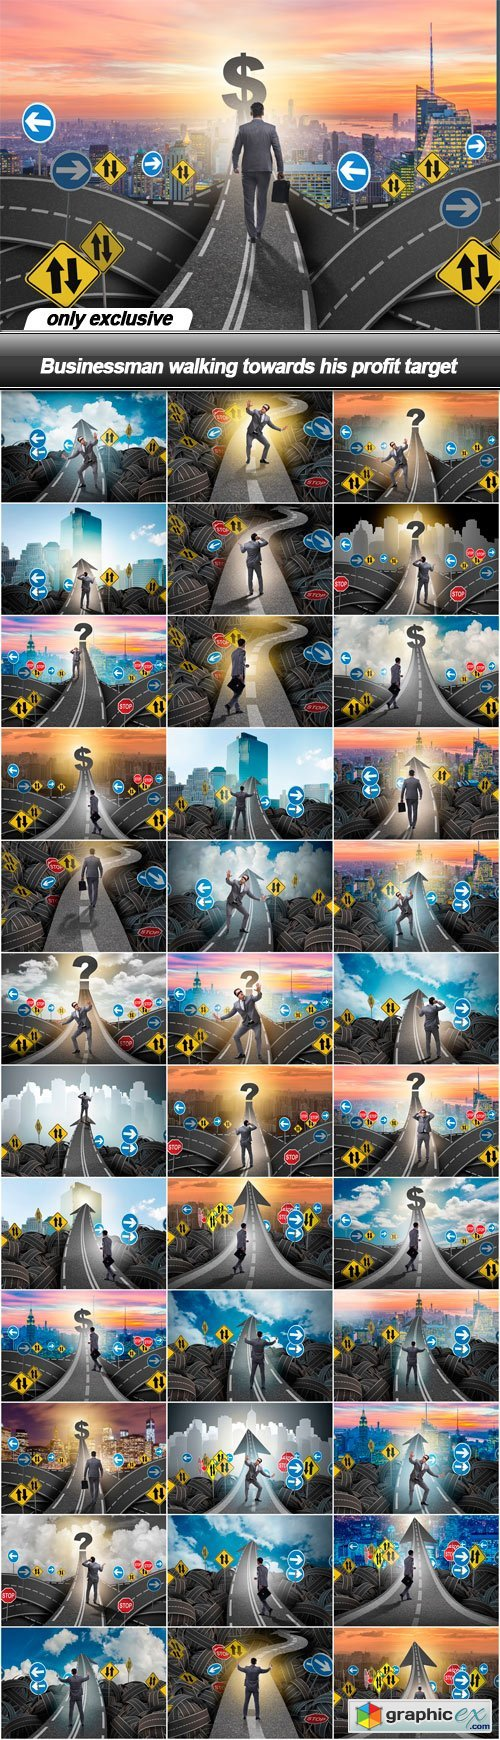 Businessman walking towards his profit target - 37 UHQ JPEG